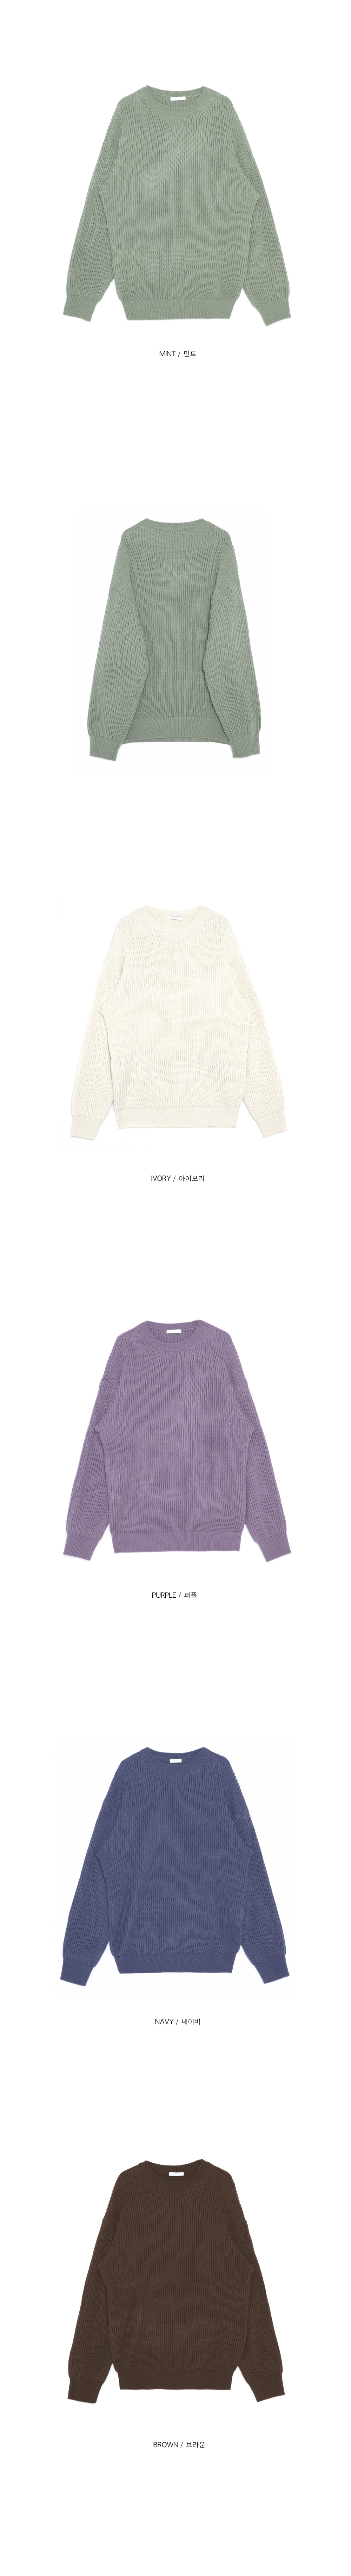 doubleness round knit - men